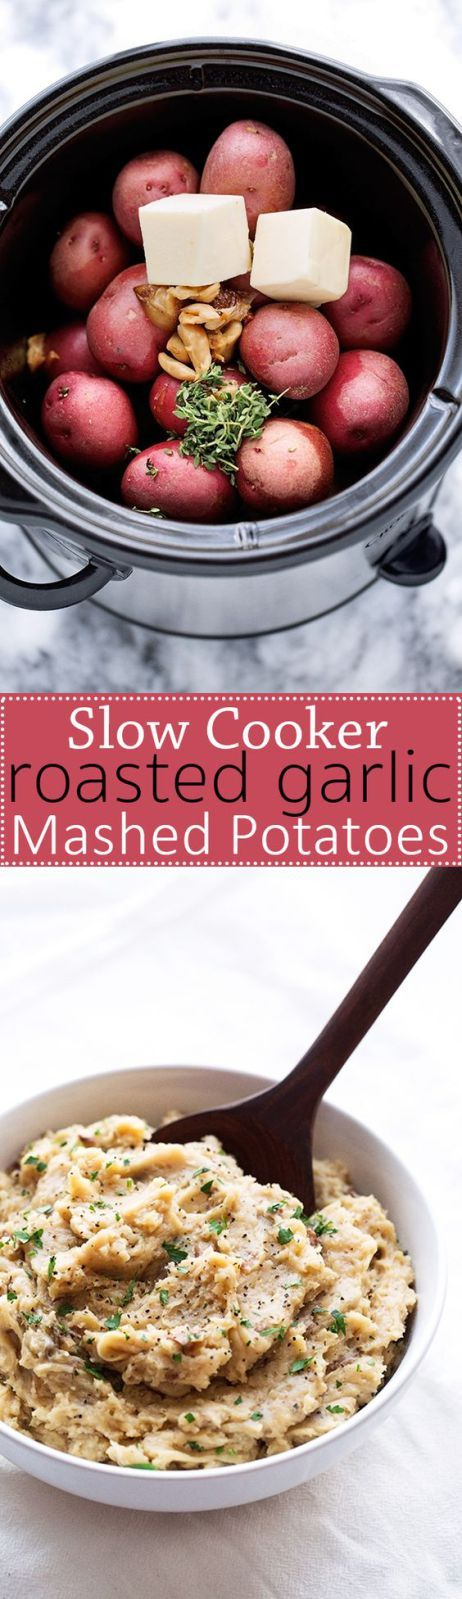 Slow Cooker Roasted Garlic Mashed Potatoes Recipe | Little Spice Jar - The BEST Classic, Improved and Traditional Thanksgiving Dinner Menu Favorites Recipes - Main Dishes, Side Dishes, Appetizers, Salads, Yummy Desserts and more! (best mashed potatoes)